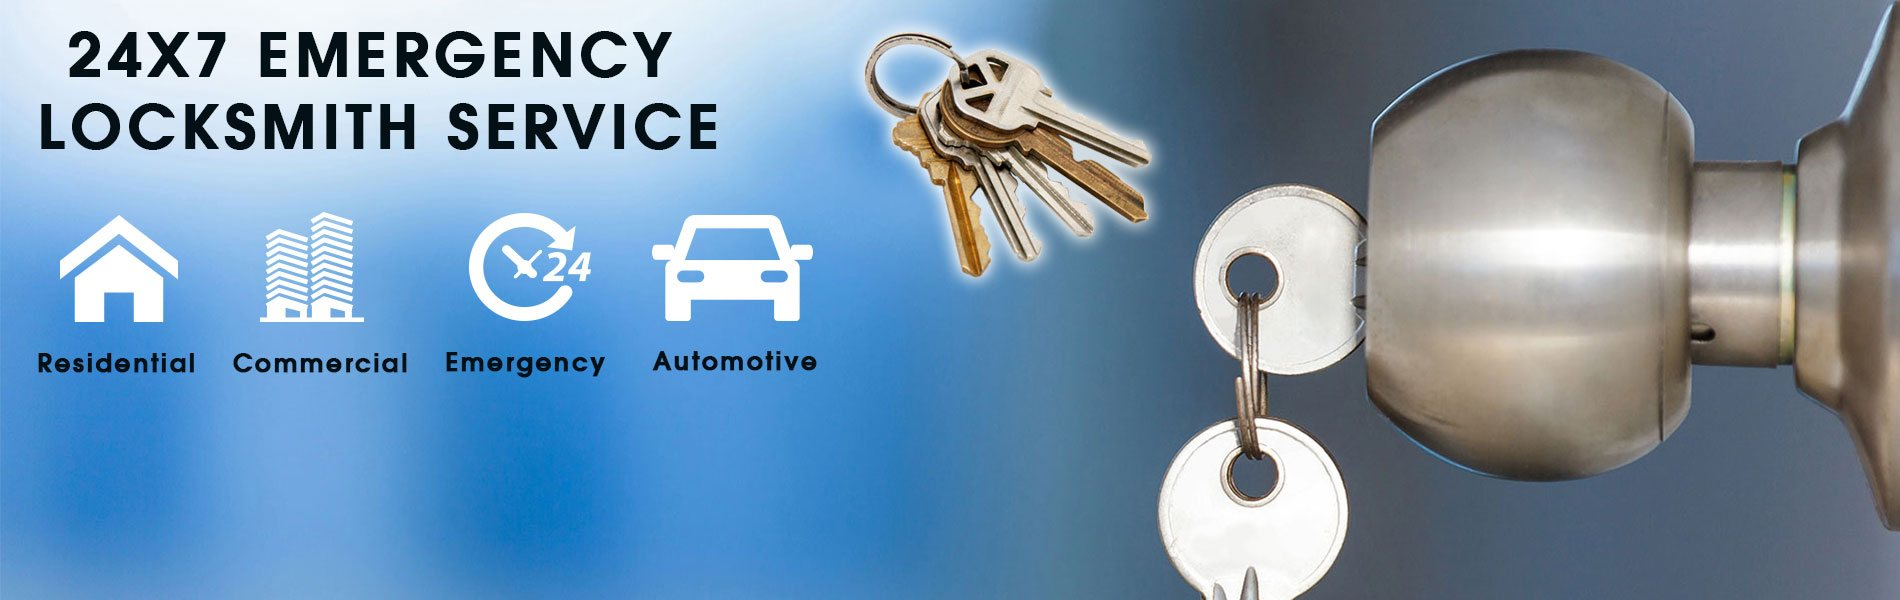 Golden Locksmith Services Glendale, CA 818-485-6156